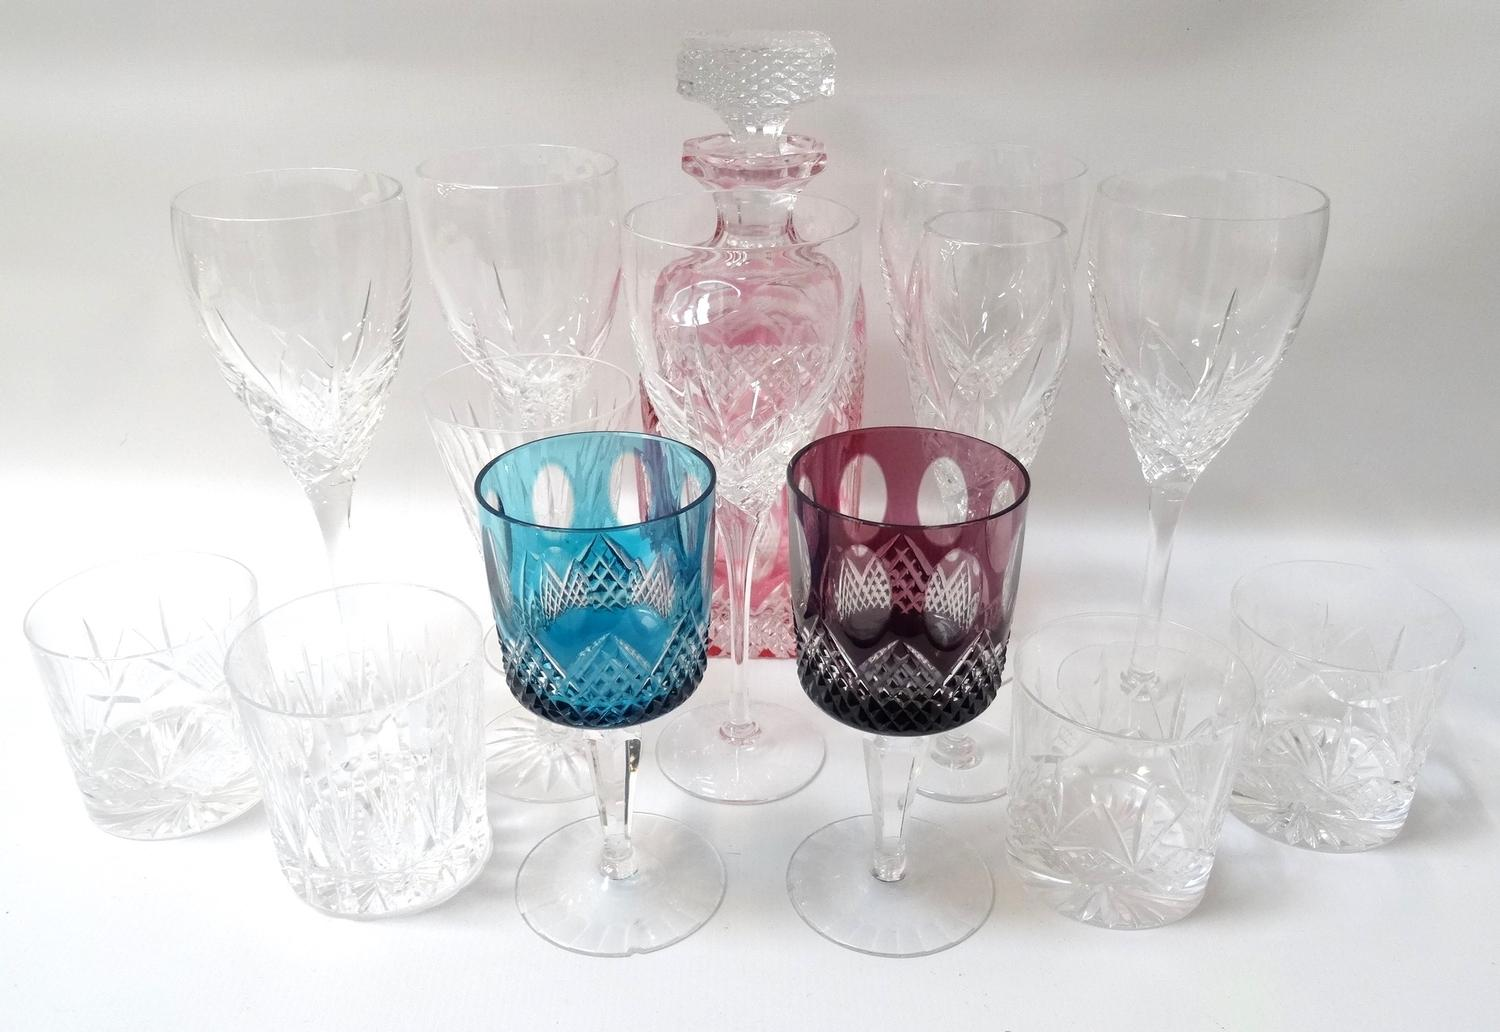 Lot 49 - FIVE EDINBURGH CRYSTAL WINE GLASSES champagne flute and three whisky tumblers, a conical Waterford